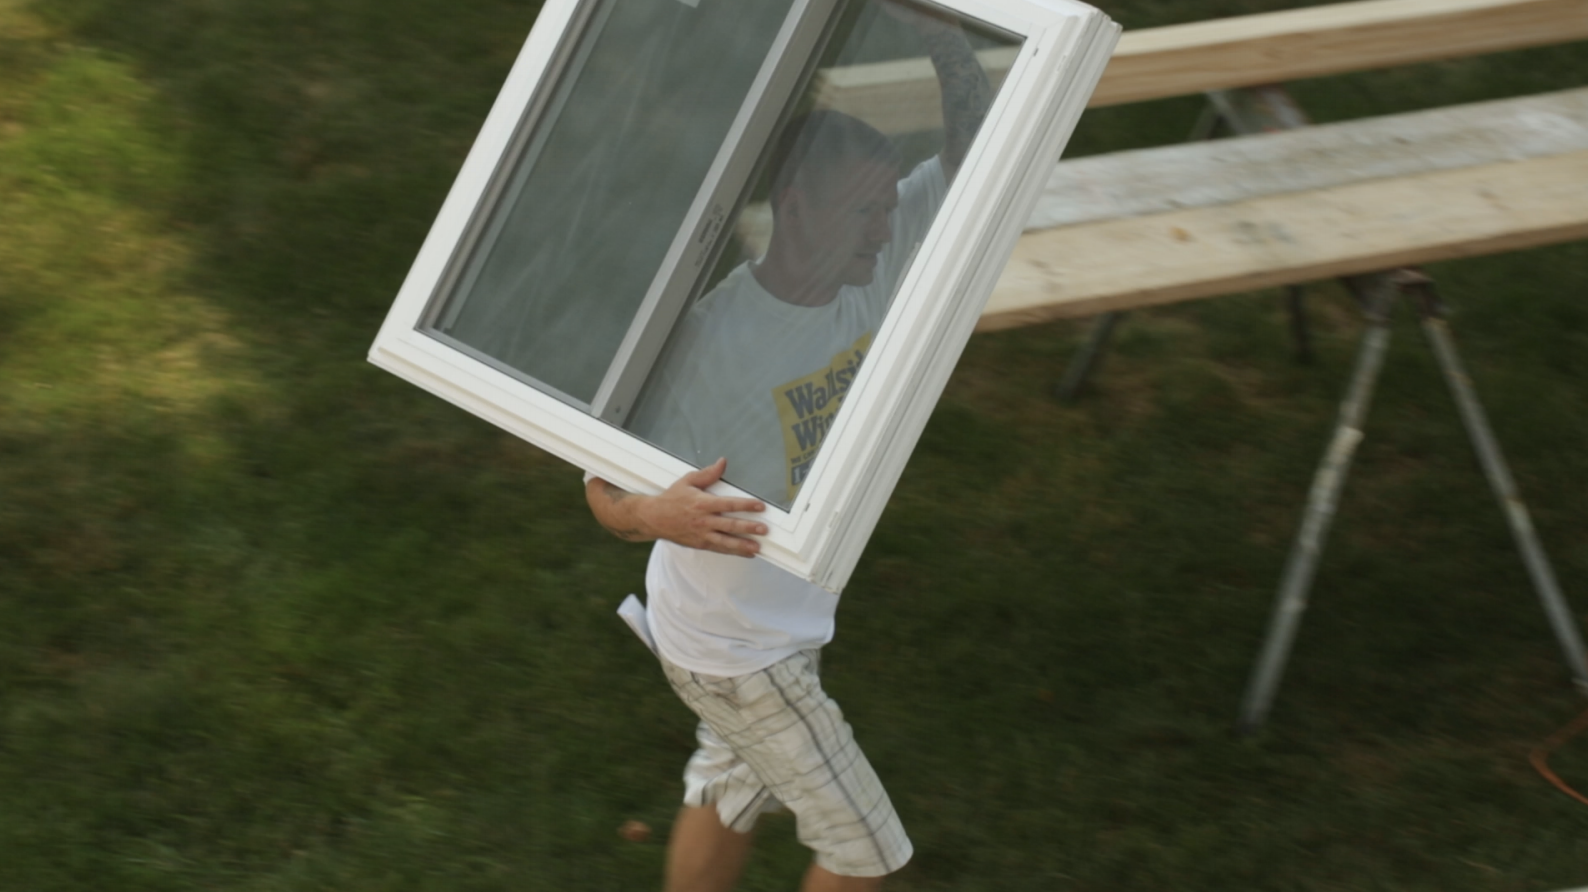 Cardinal Glass Industries, Wallside Windows' exclusive glass supplier, specializes in top-of-line glass for customers.